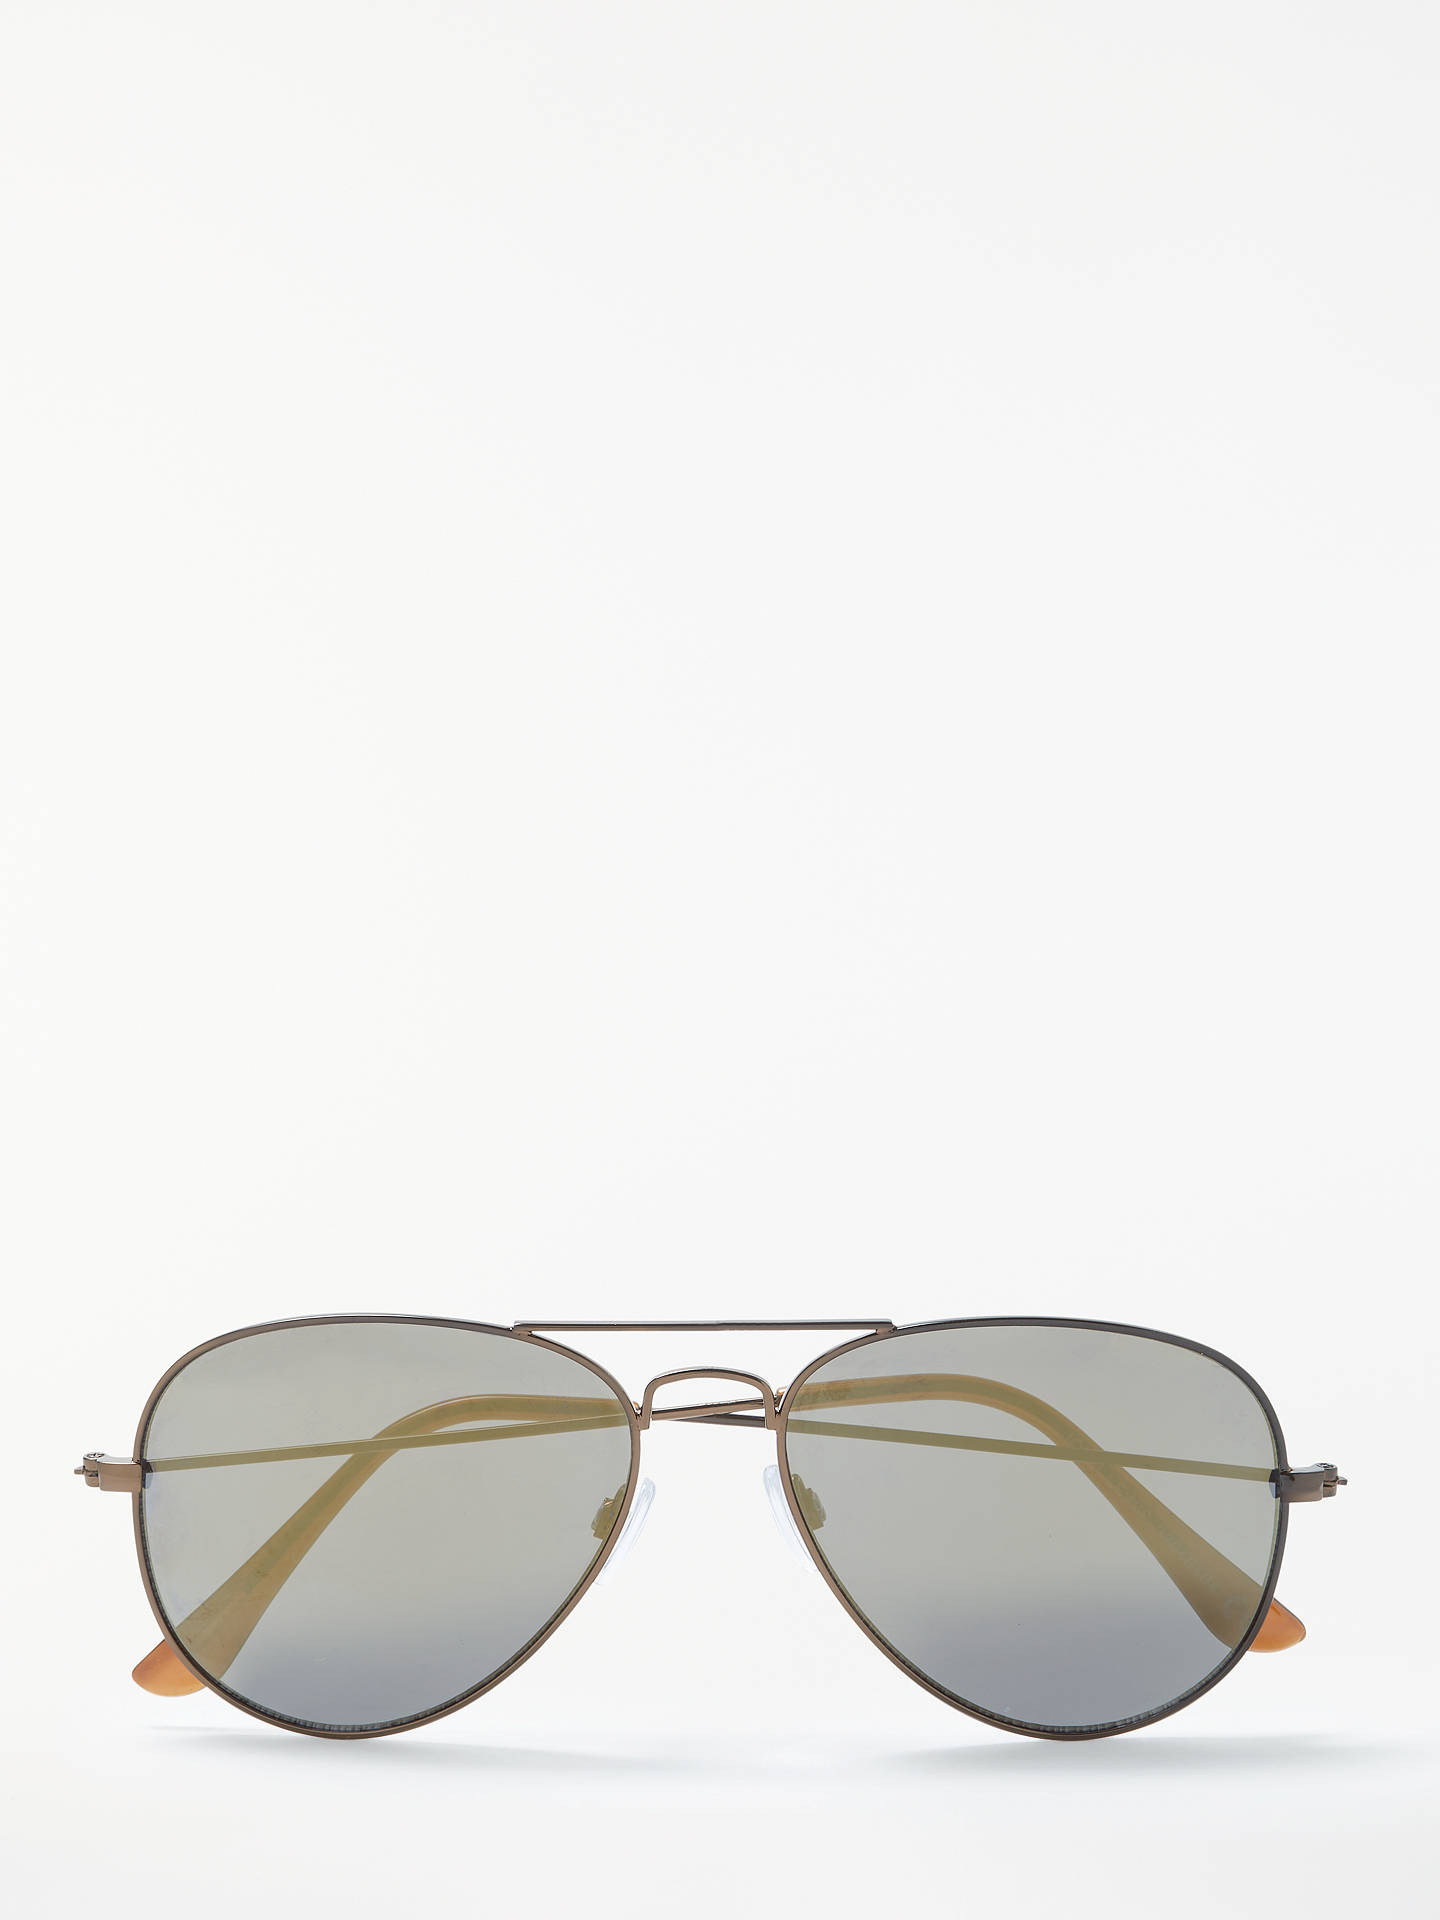 Buy John Lewis & Partners Classic Aviator Sunglasses, Metallic Brown Online at johnlewis.com